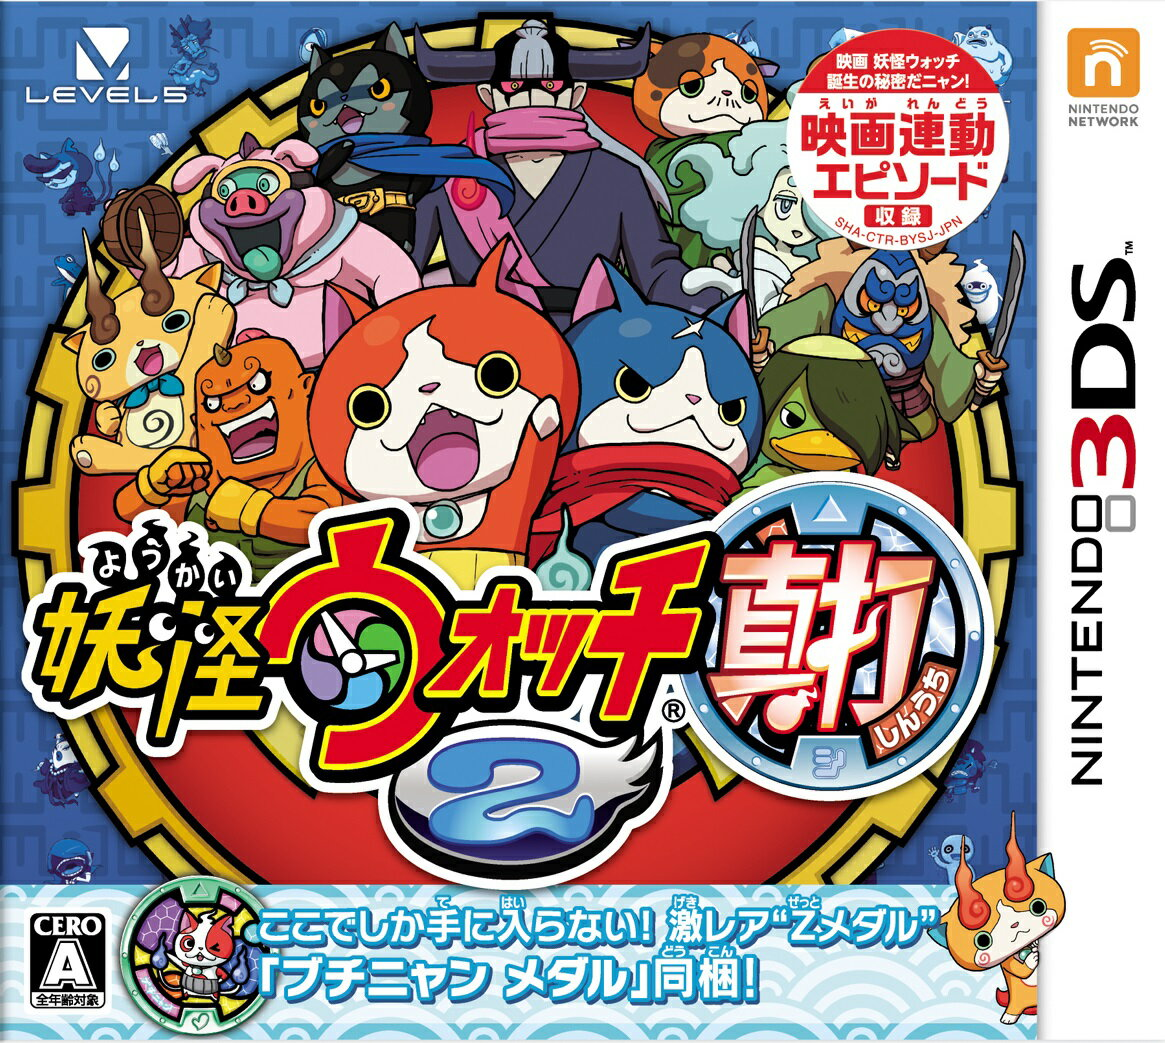 Nintendo 3DS・2DS, ソフト 2 3DS CTR-P-BYSJ